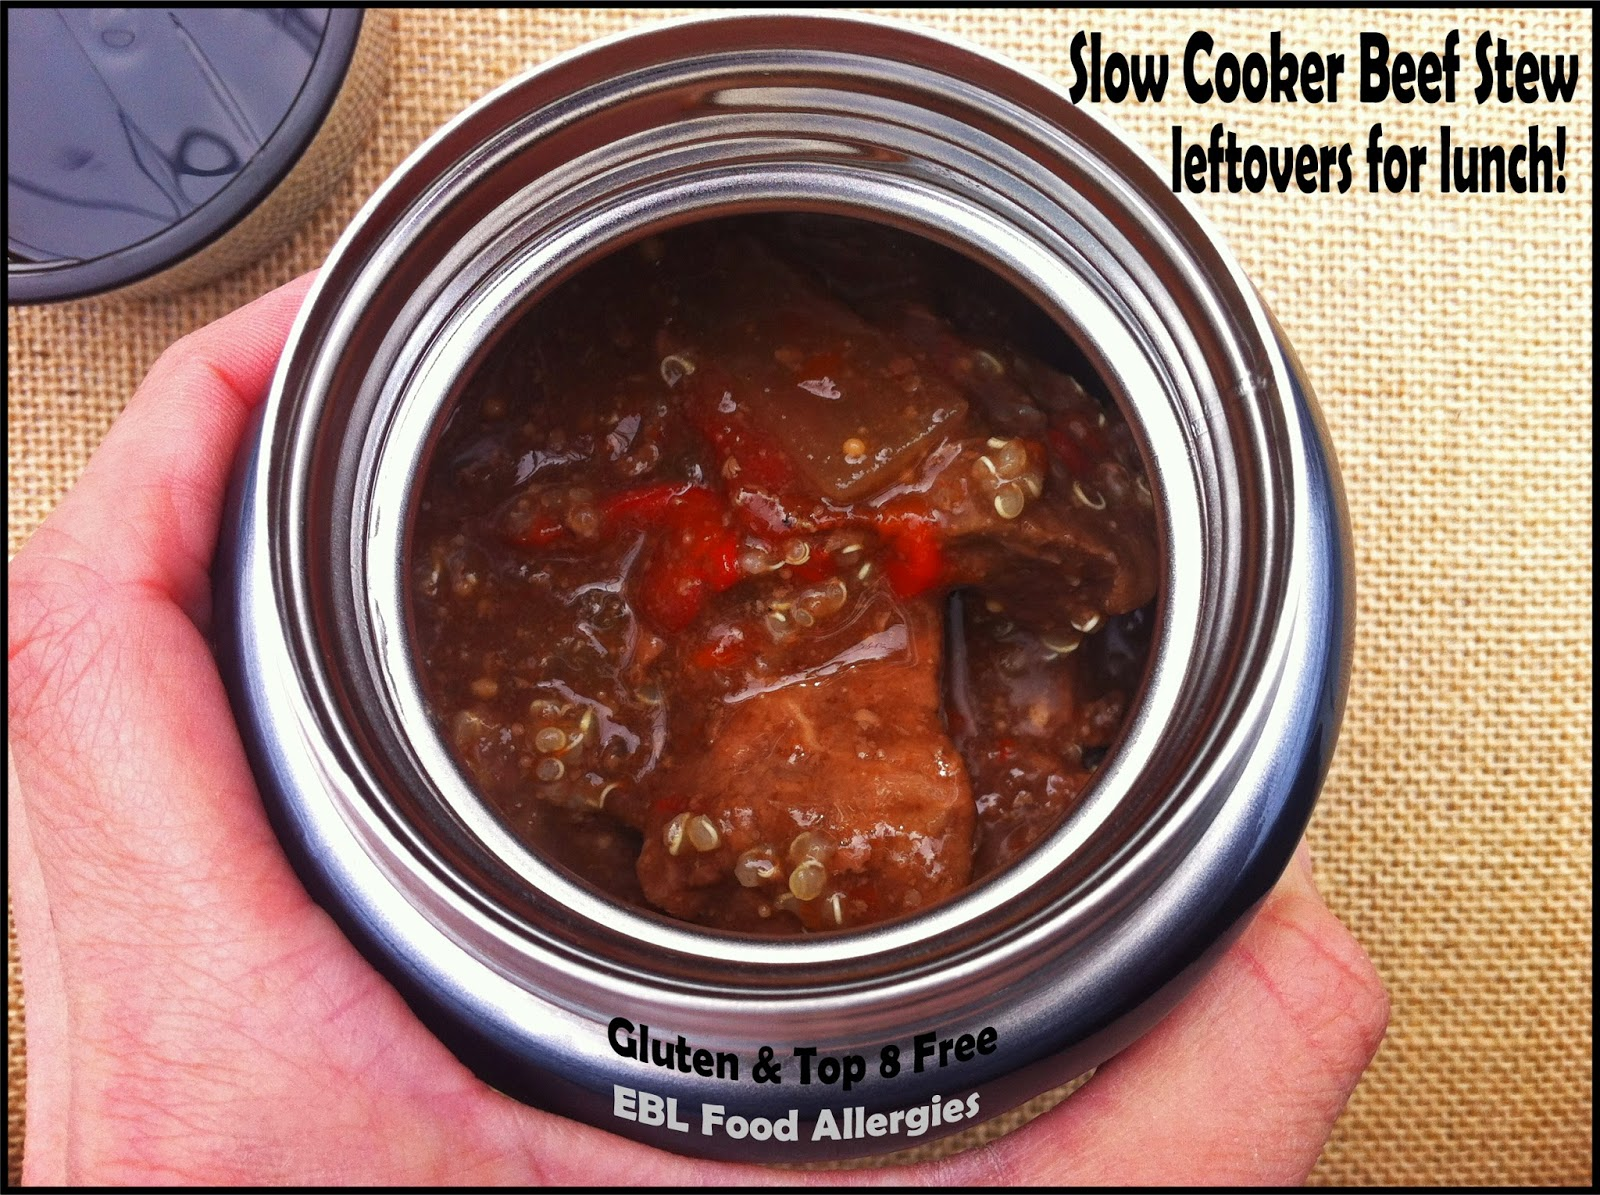 EBL Food Allergies: Slow Cooker Beef Stew leftover for lunch! Kid's Lunch